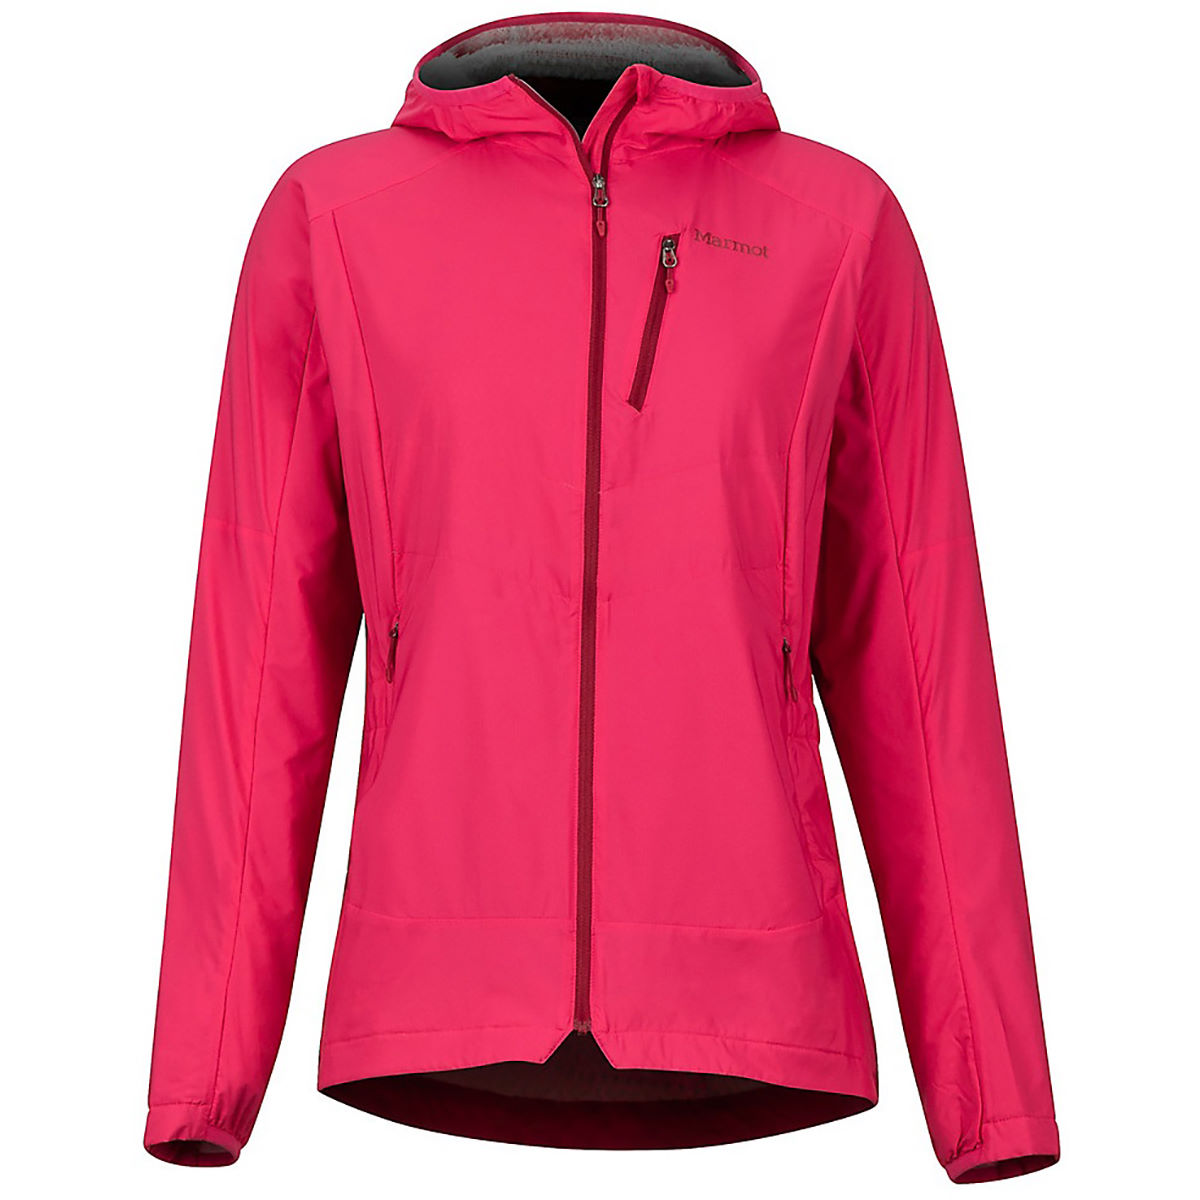 Marmot Marmot Womens Alpha 60 Jacket   Jackets